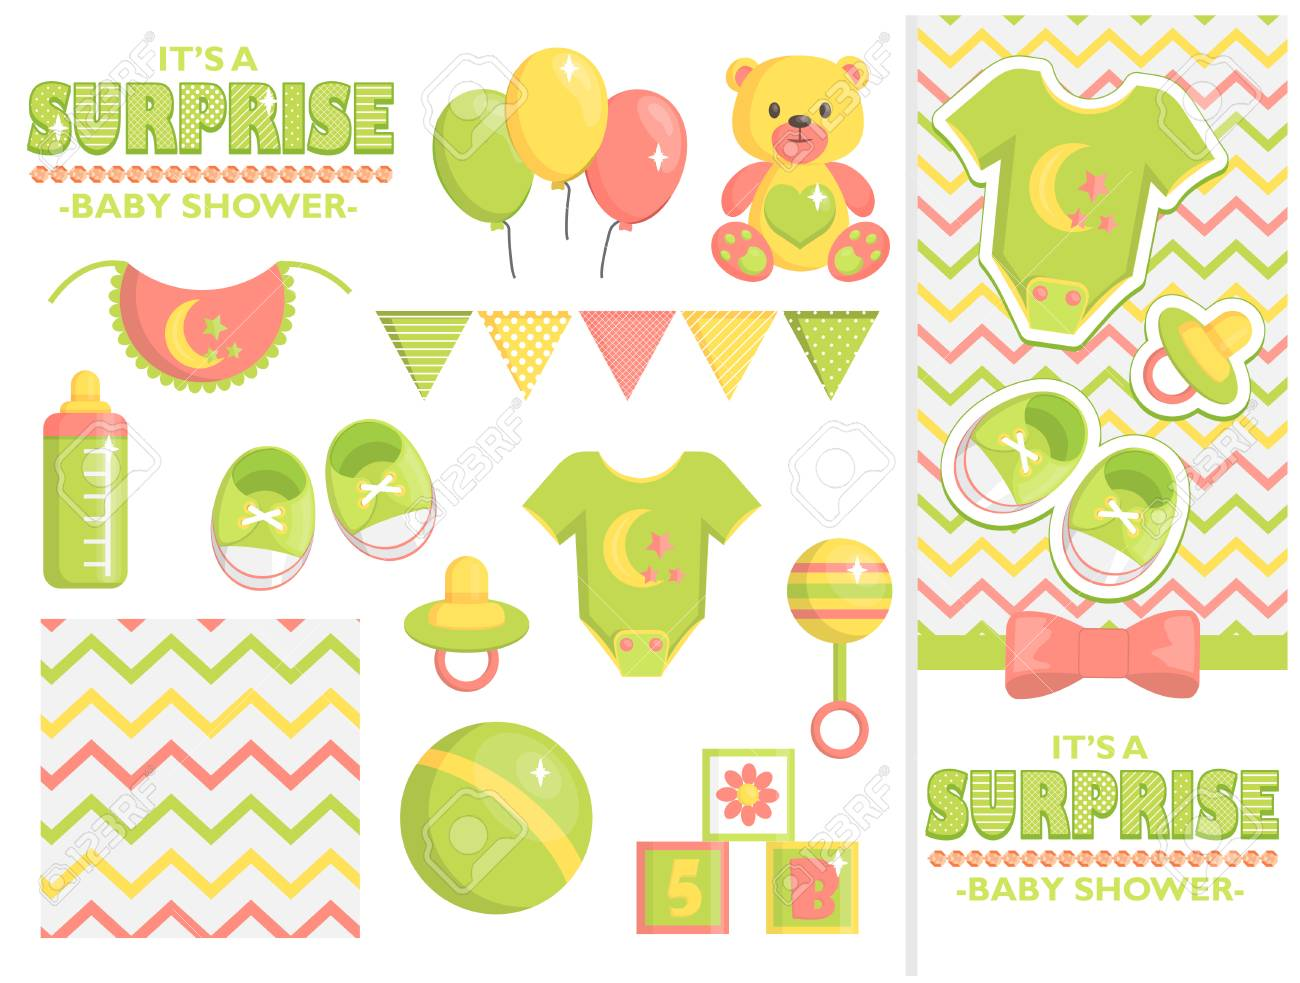 It Is A Surprise Baby Shower Items Collection For Party Event